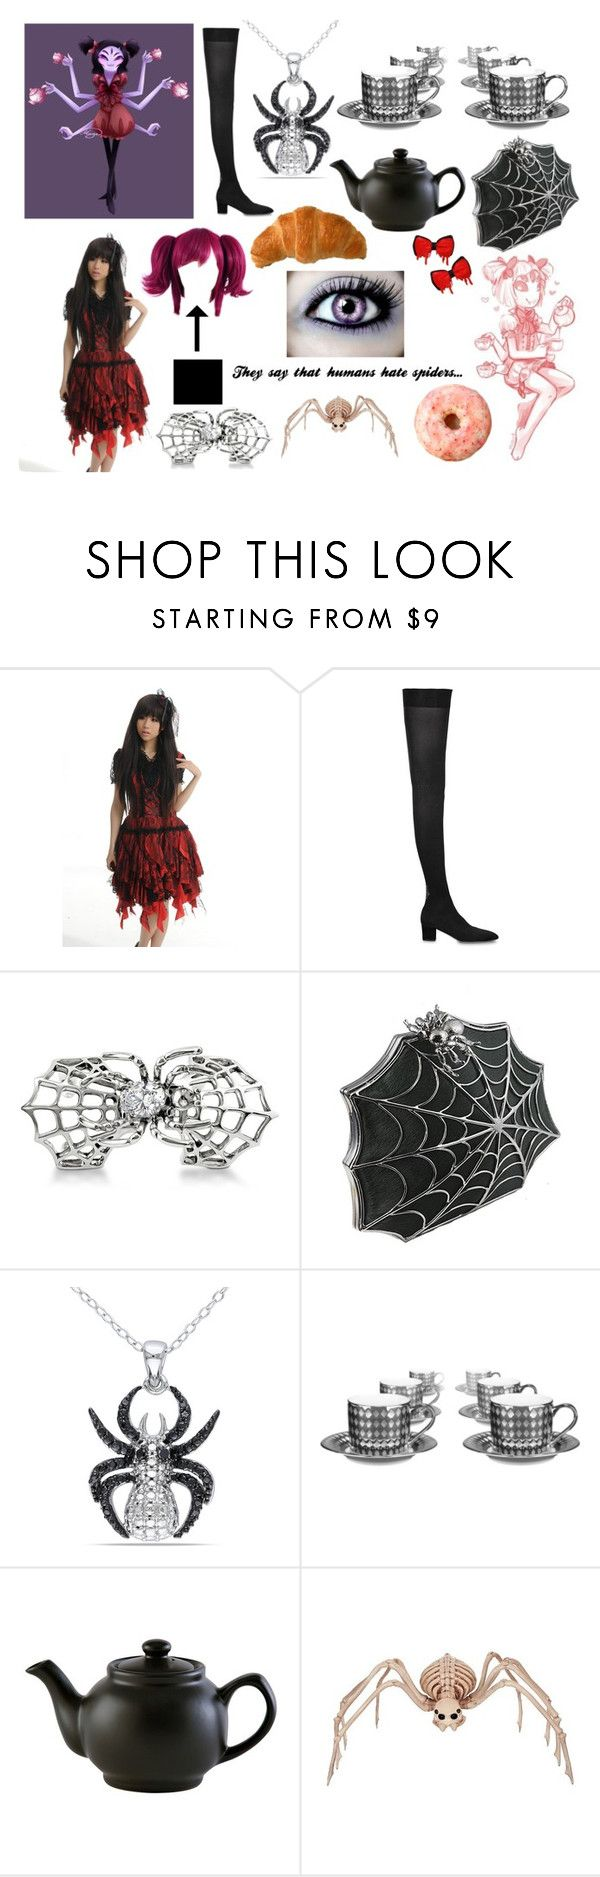 """""""Undertake: Miss Muffet"""" by mimi-takado ❤ liked on Polyvore featuring Charlotte Olympia, BERRICLE, Bernard Delettrez, Ice, Price & Kensington and Buy Seasons"""